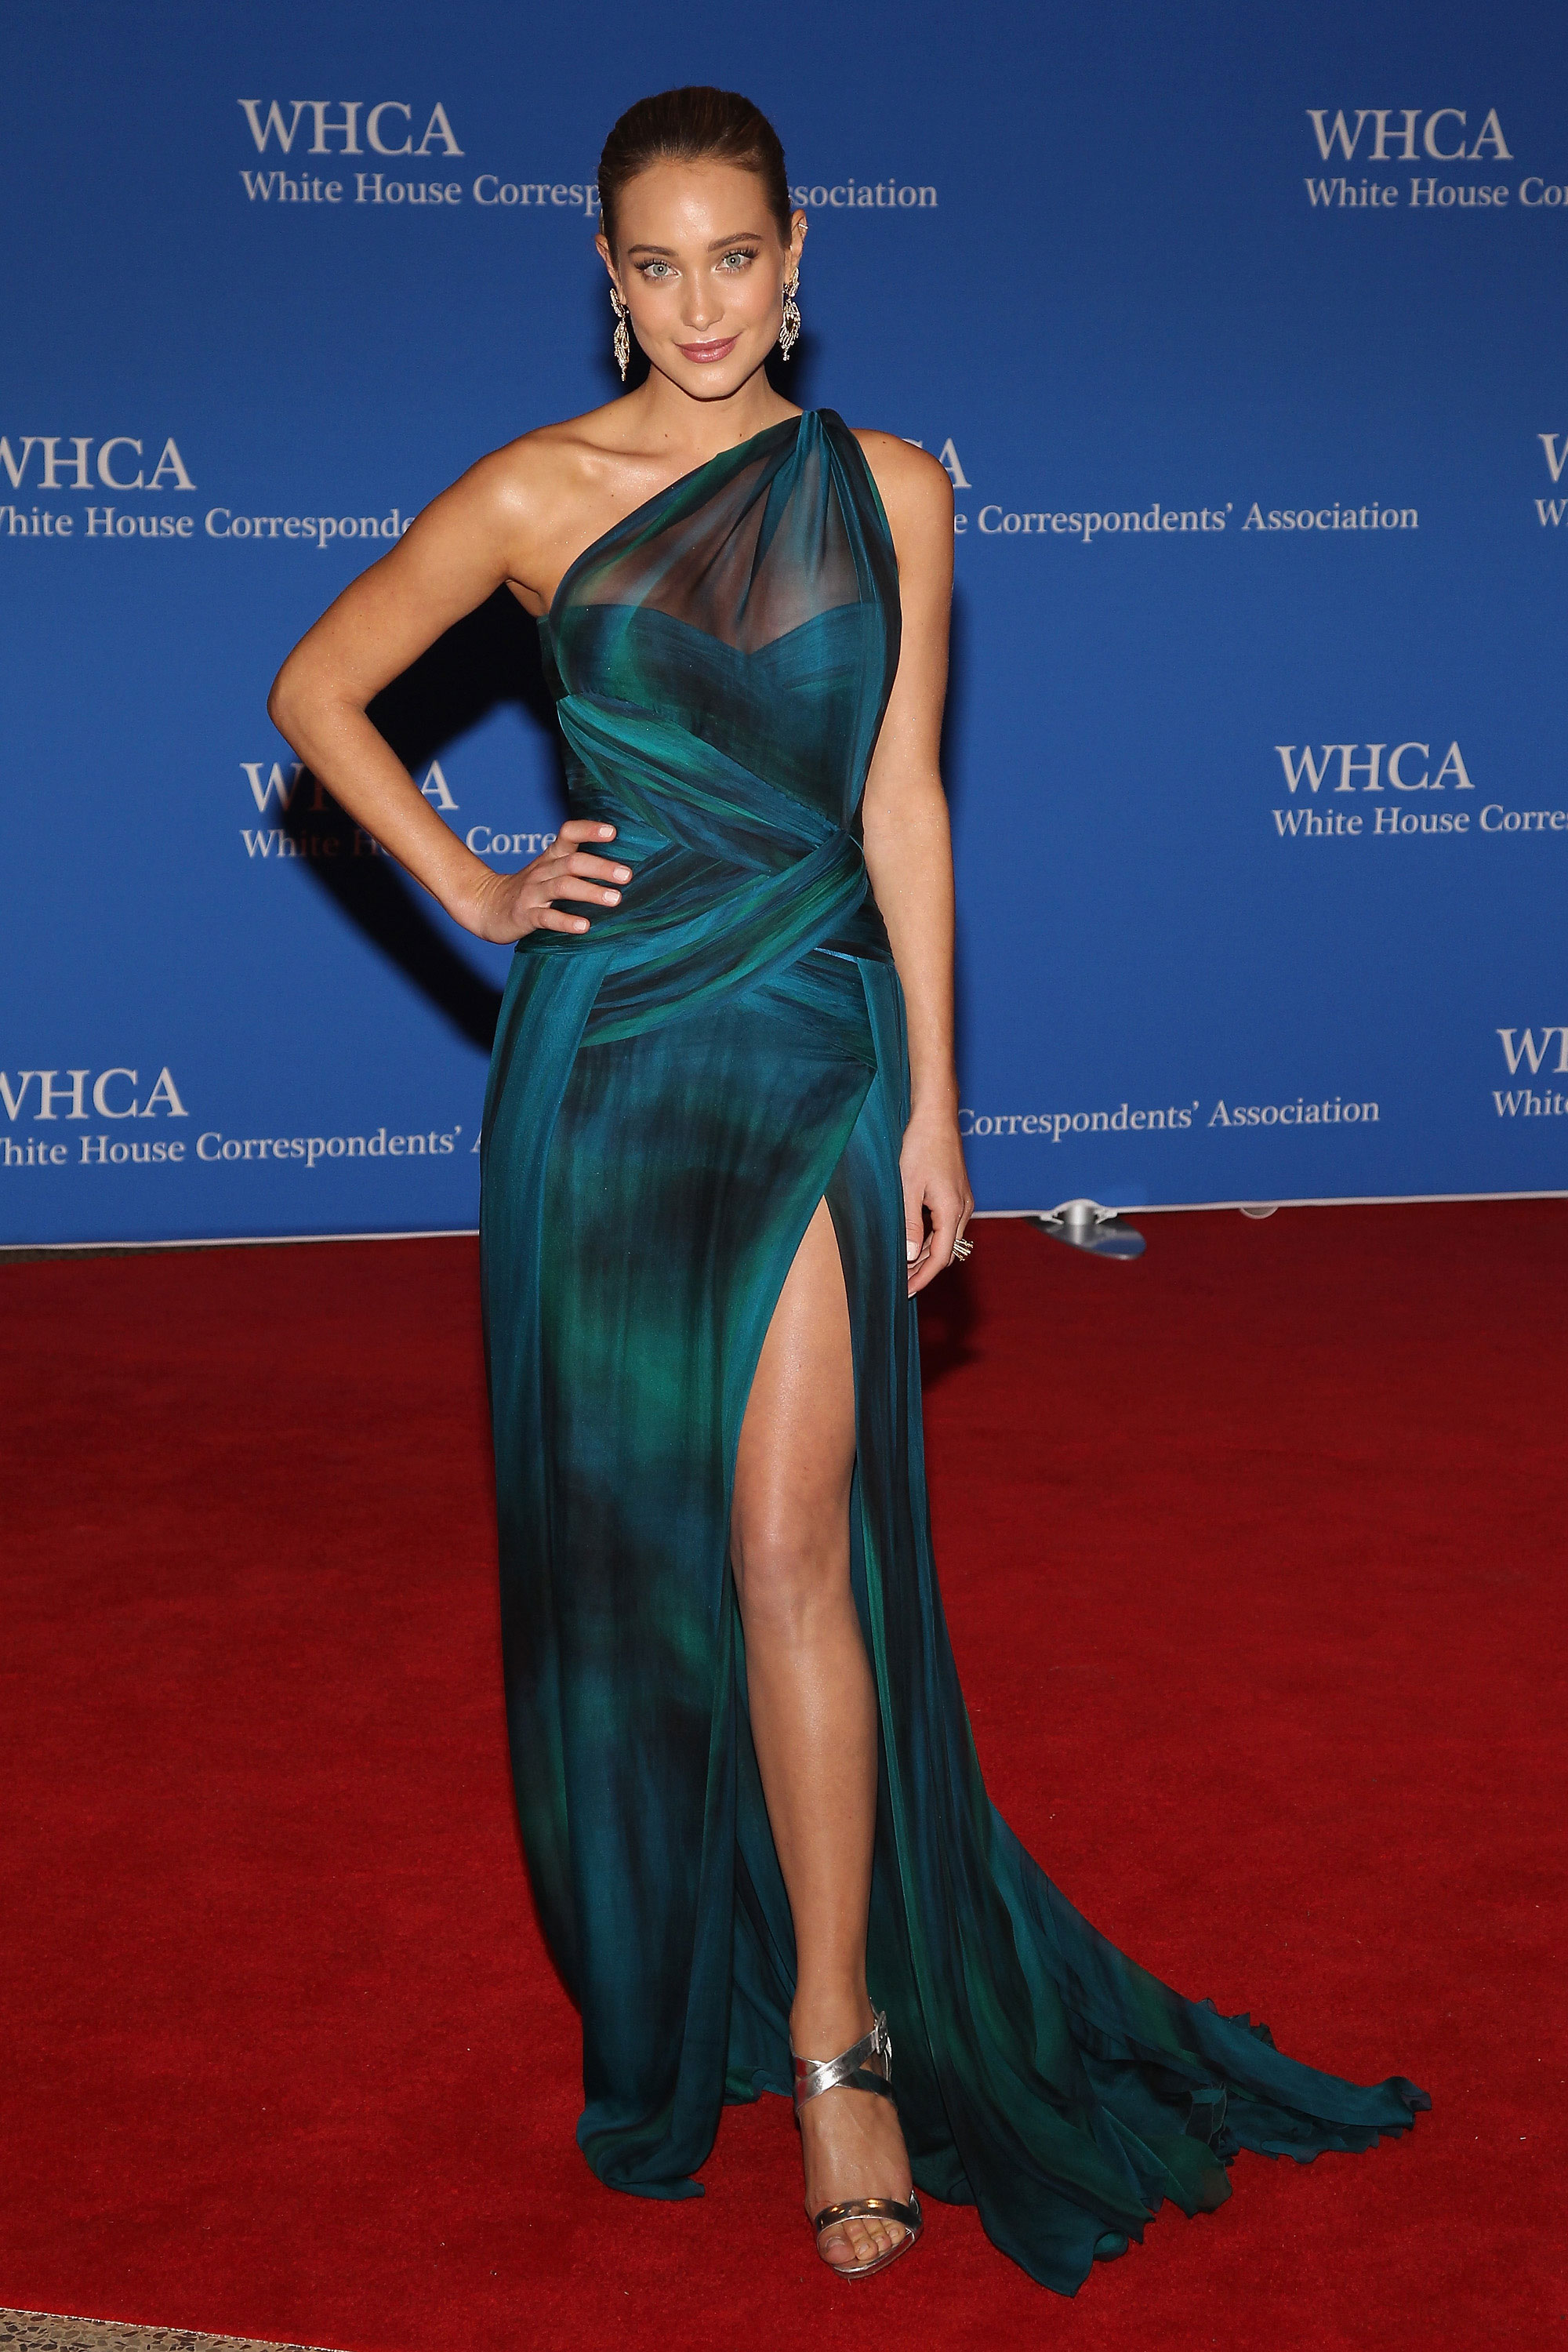 Hannah Davis attends the 101st Annual White House Correspondents' Association Dinner.